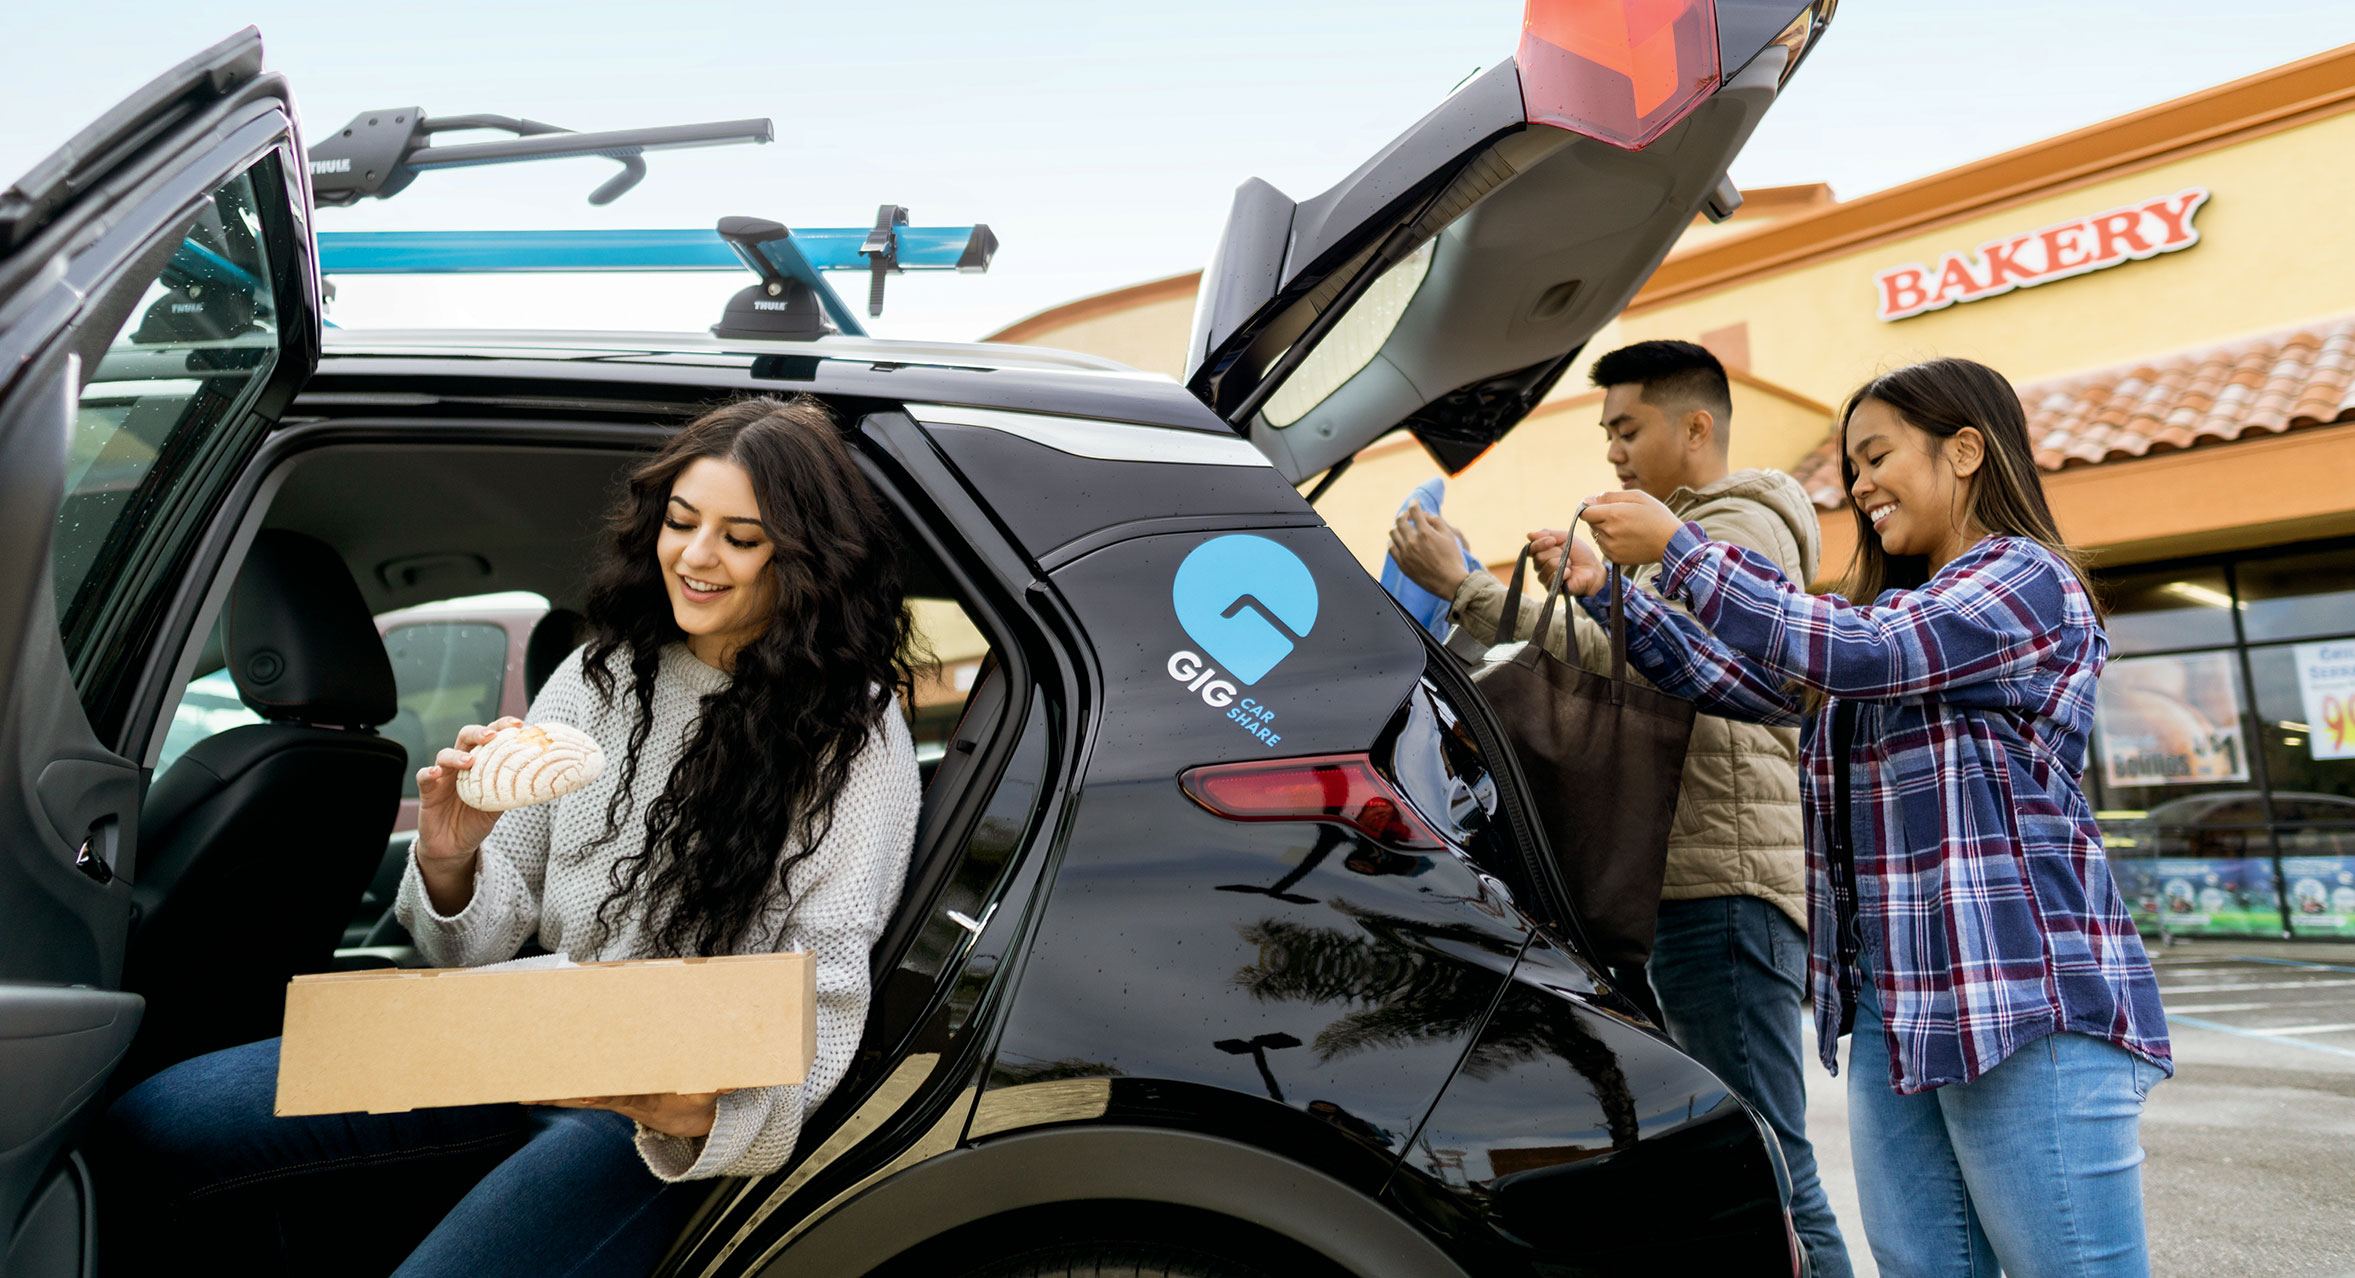 Three Friends With All Electric Gig Car Share Vehicle Load Up From Bakery Picture